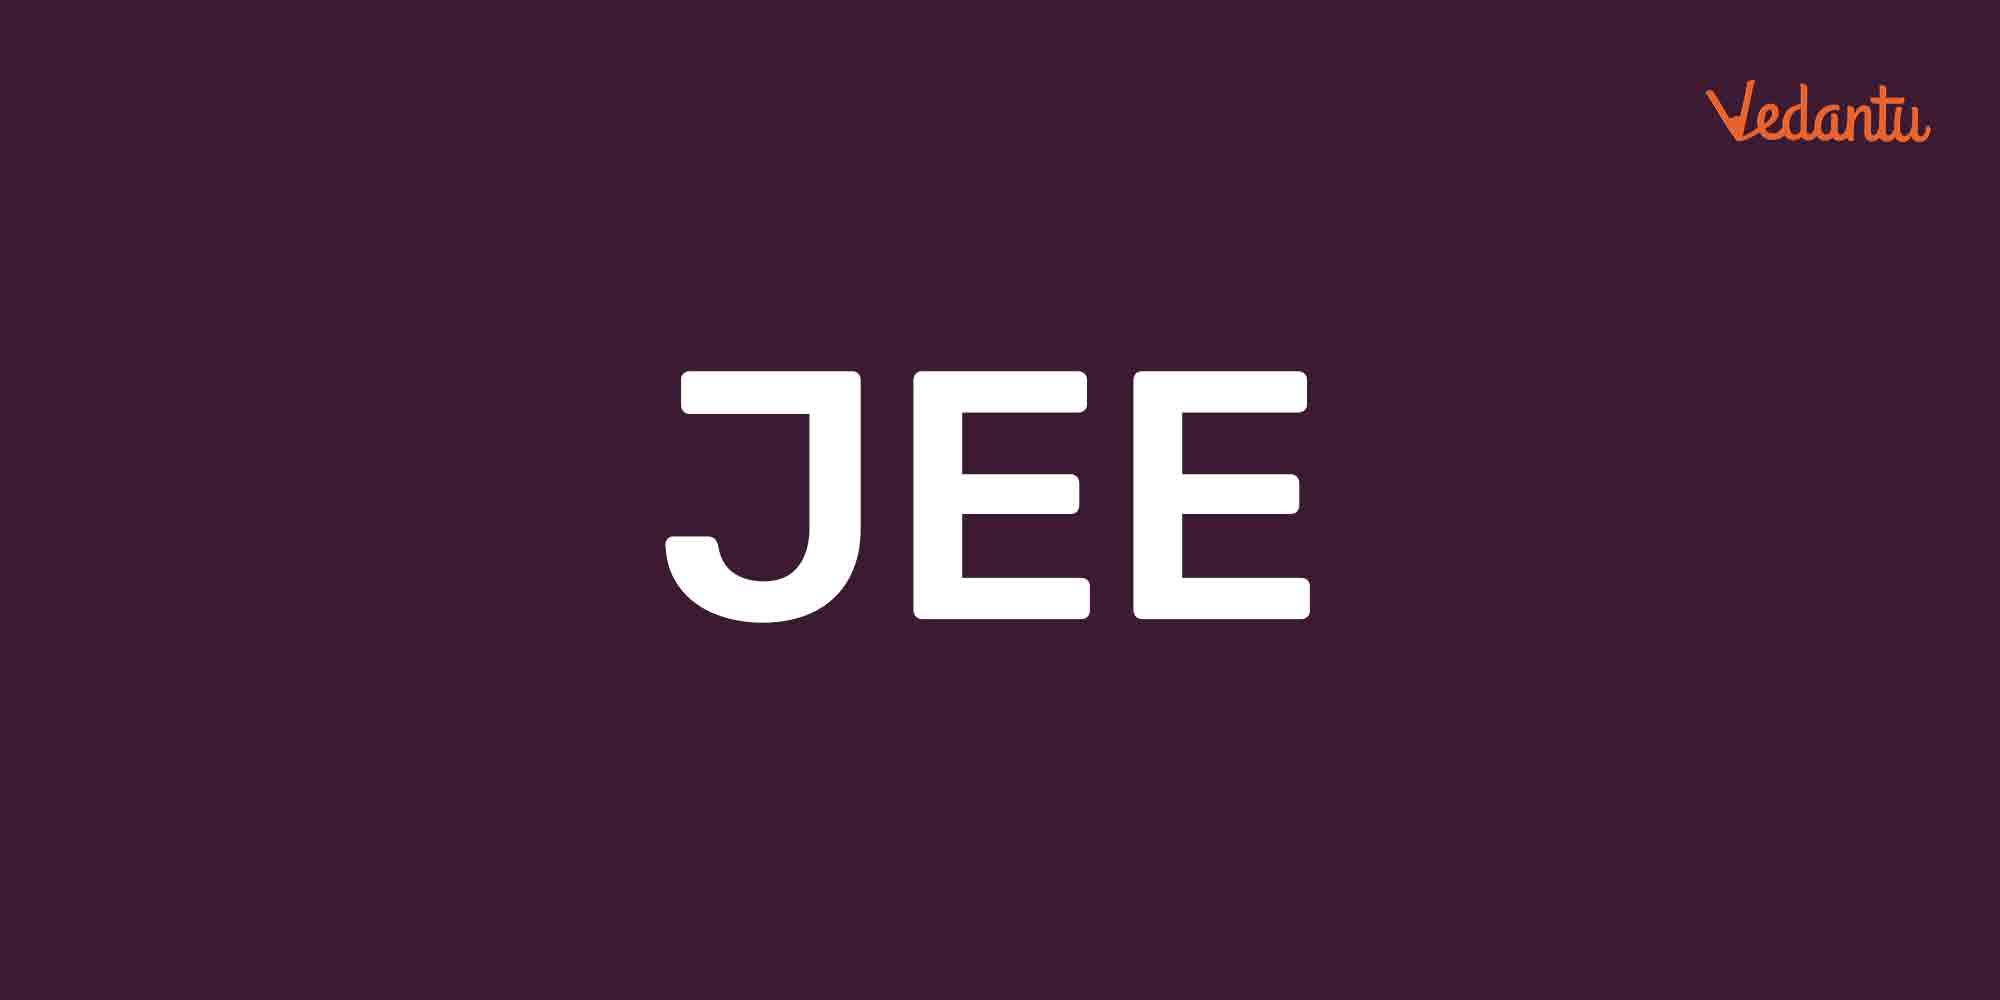 Is Preparing for JEE Mains Sufficient for JEE Advanced? Or Does it Need a Different Approach?